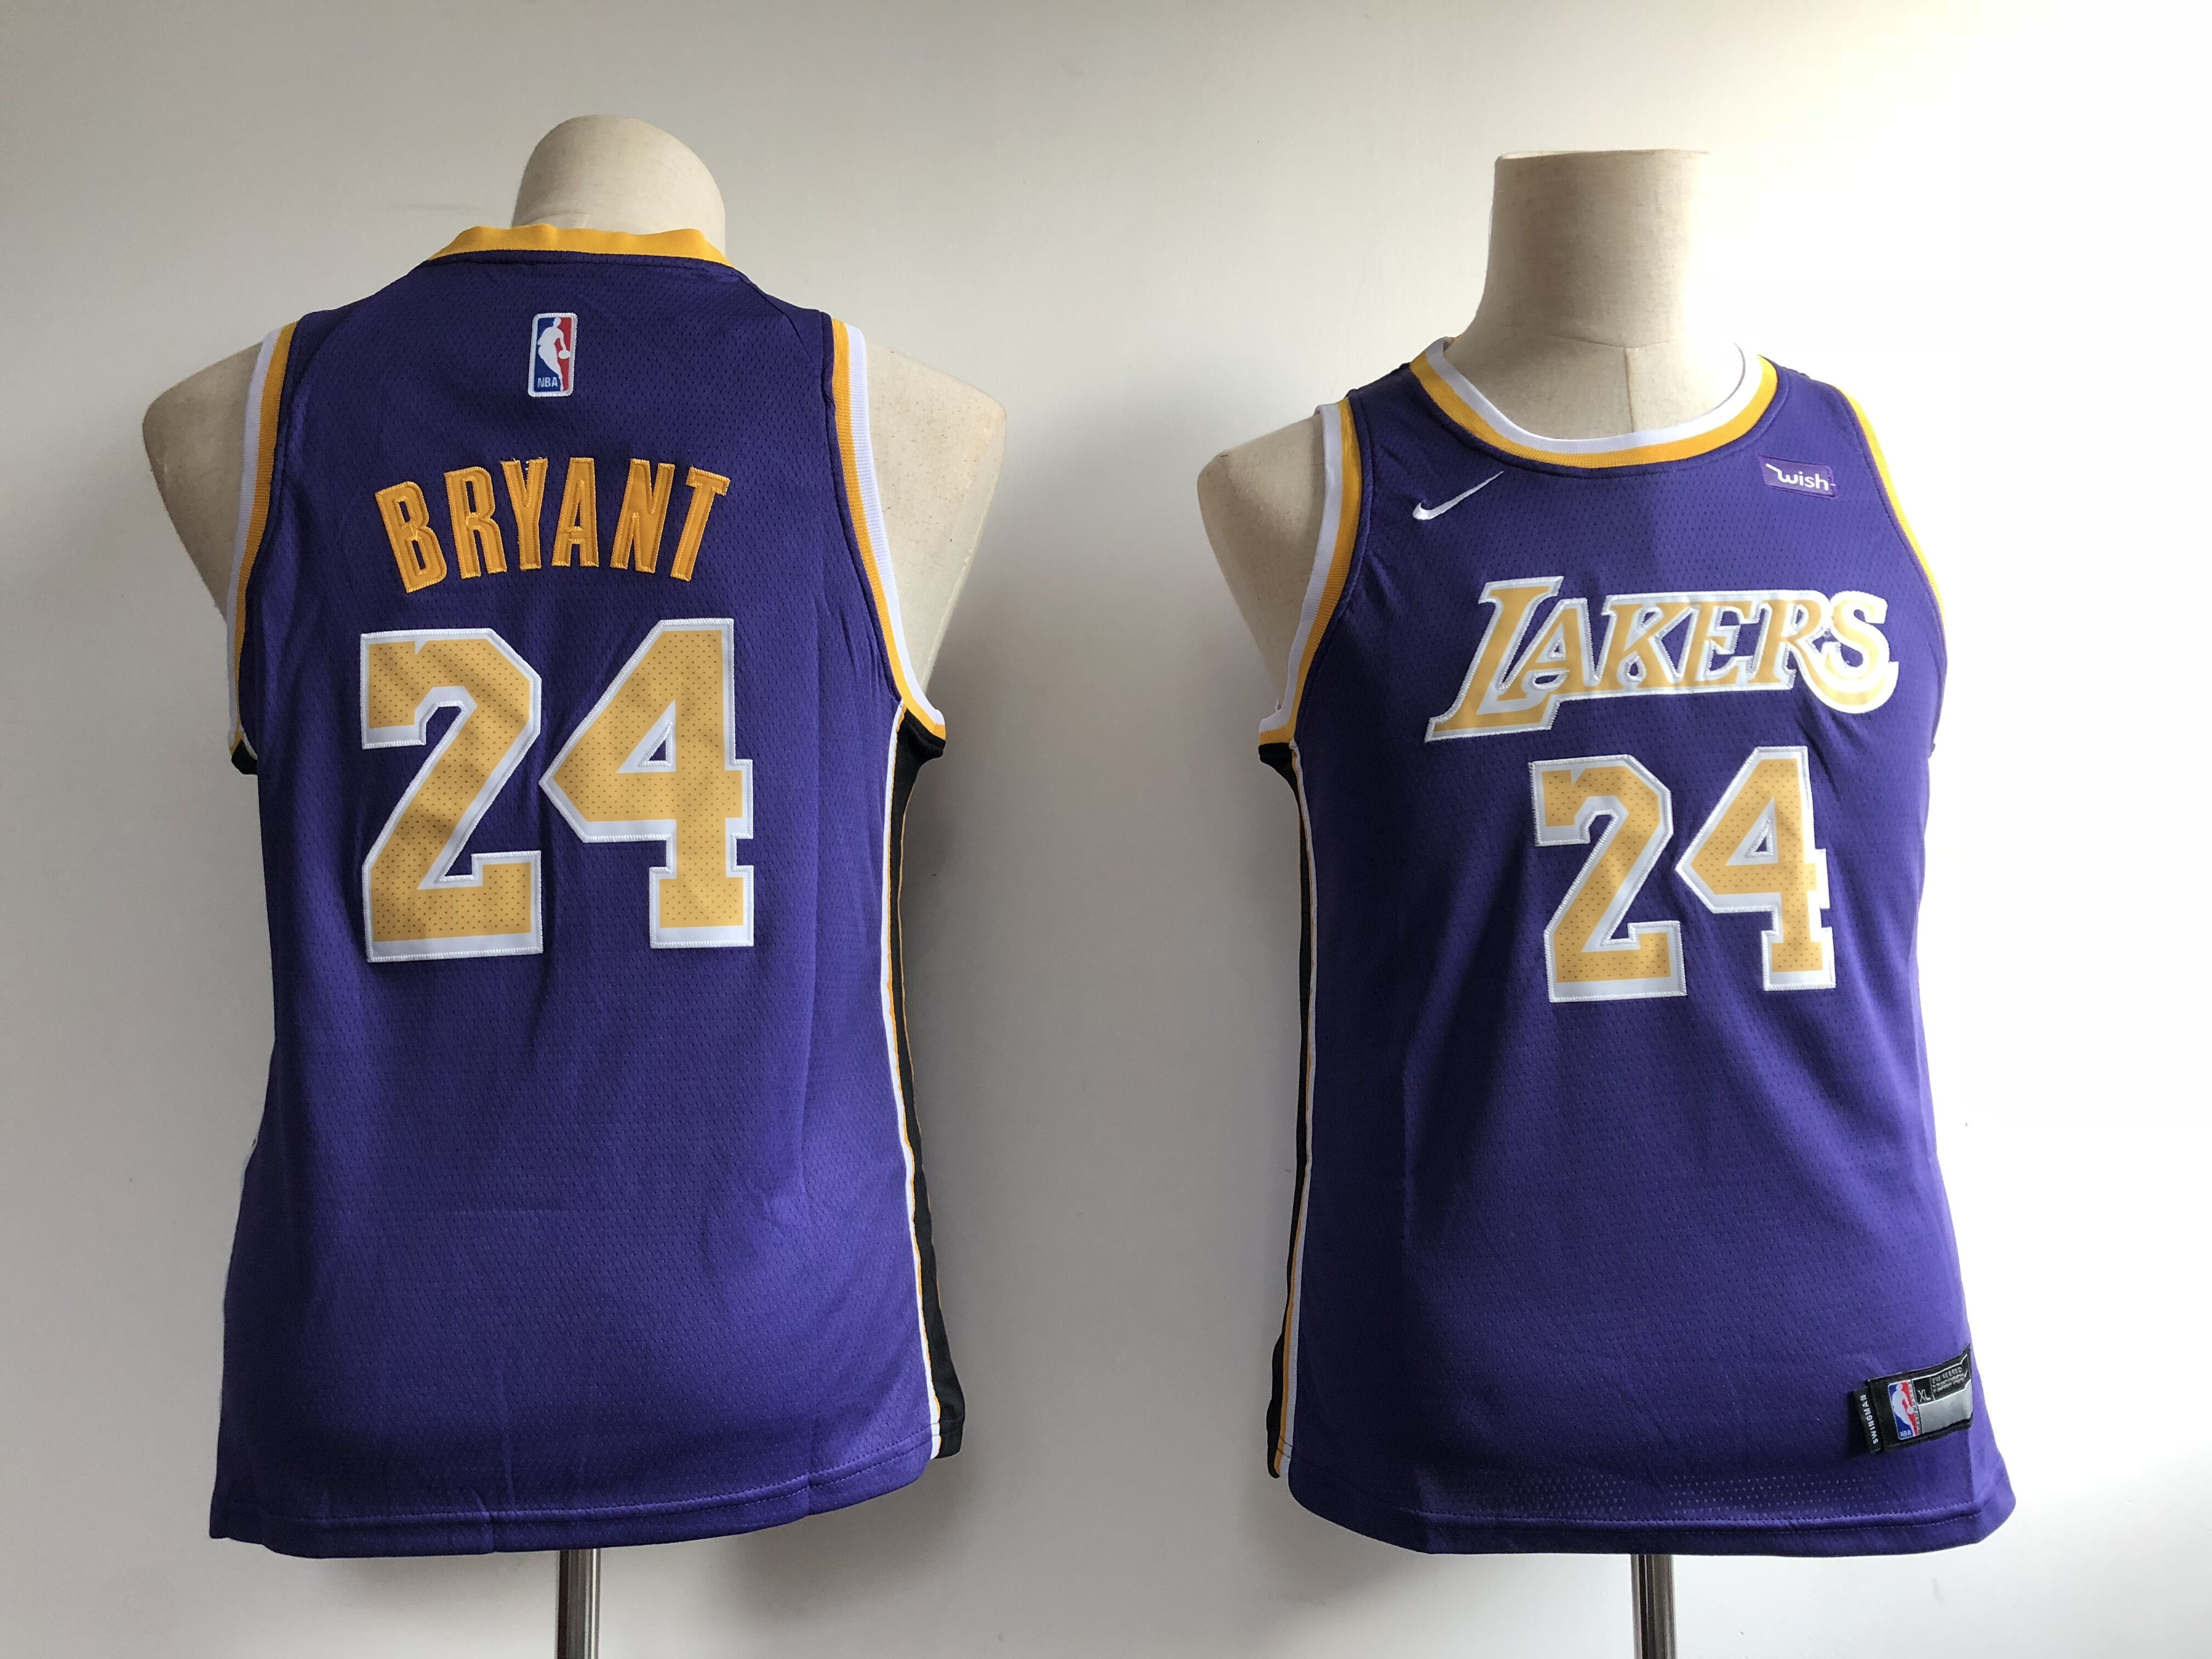 7a7ea36c464 Youth Los Angeles Lakers 24 Bryant purple Game Nike NBA Jerseys